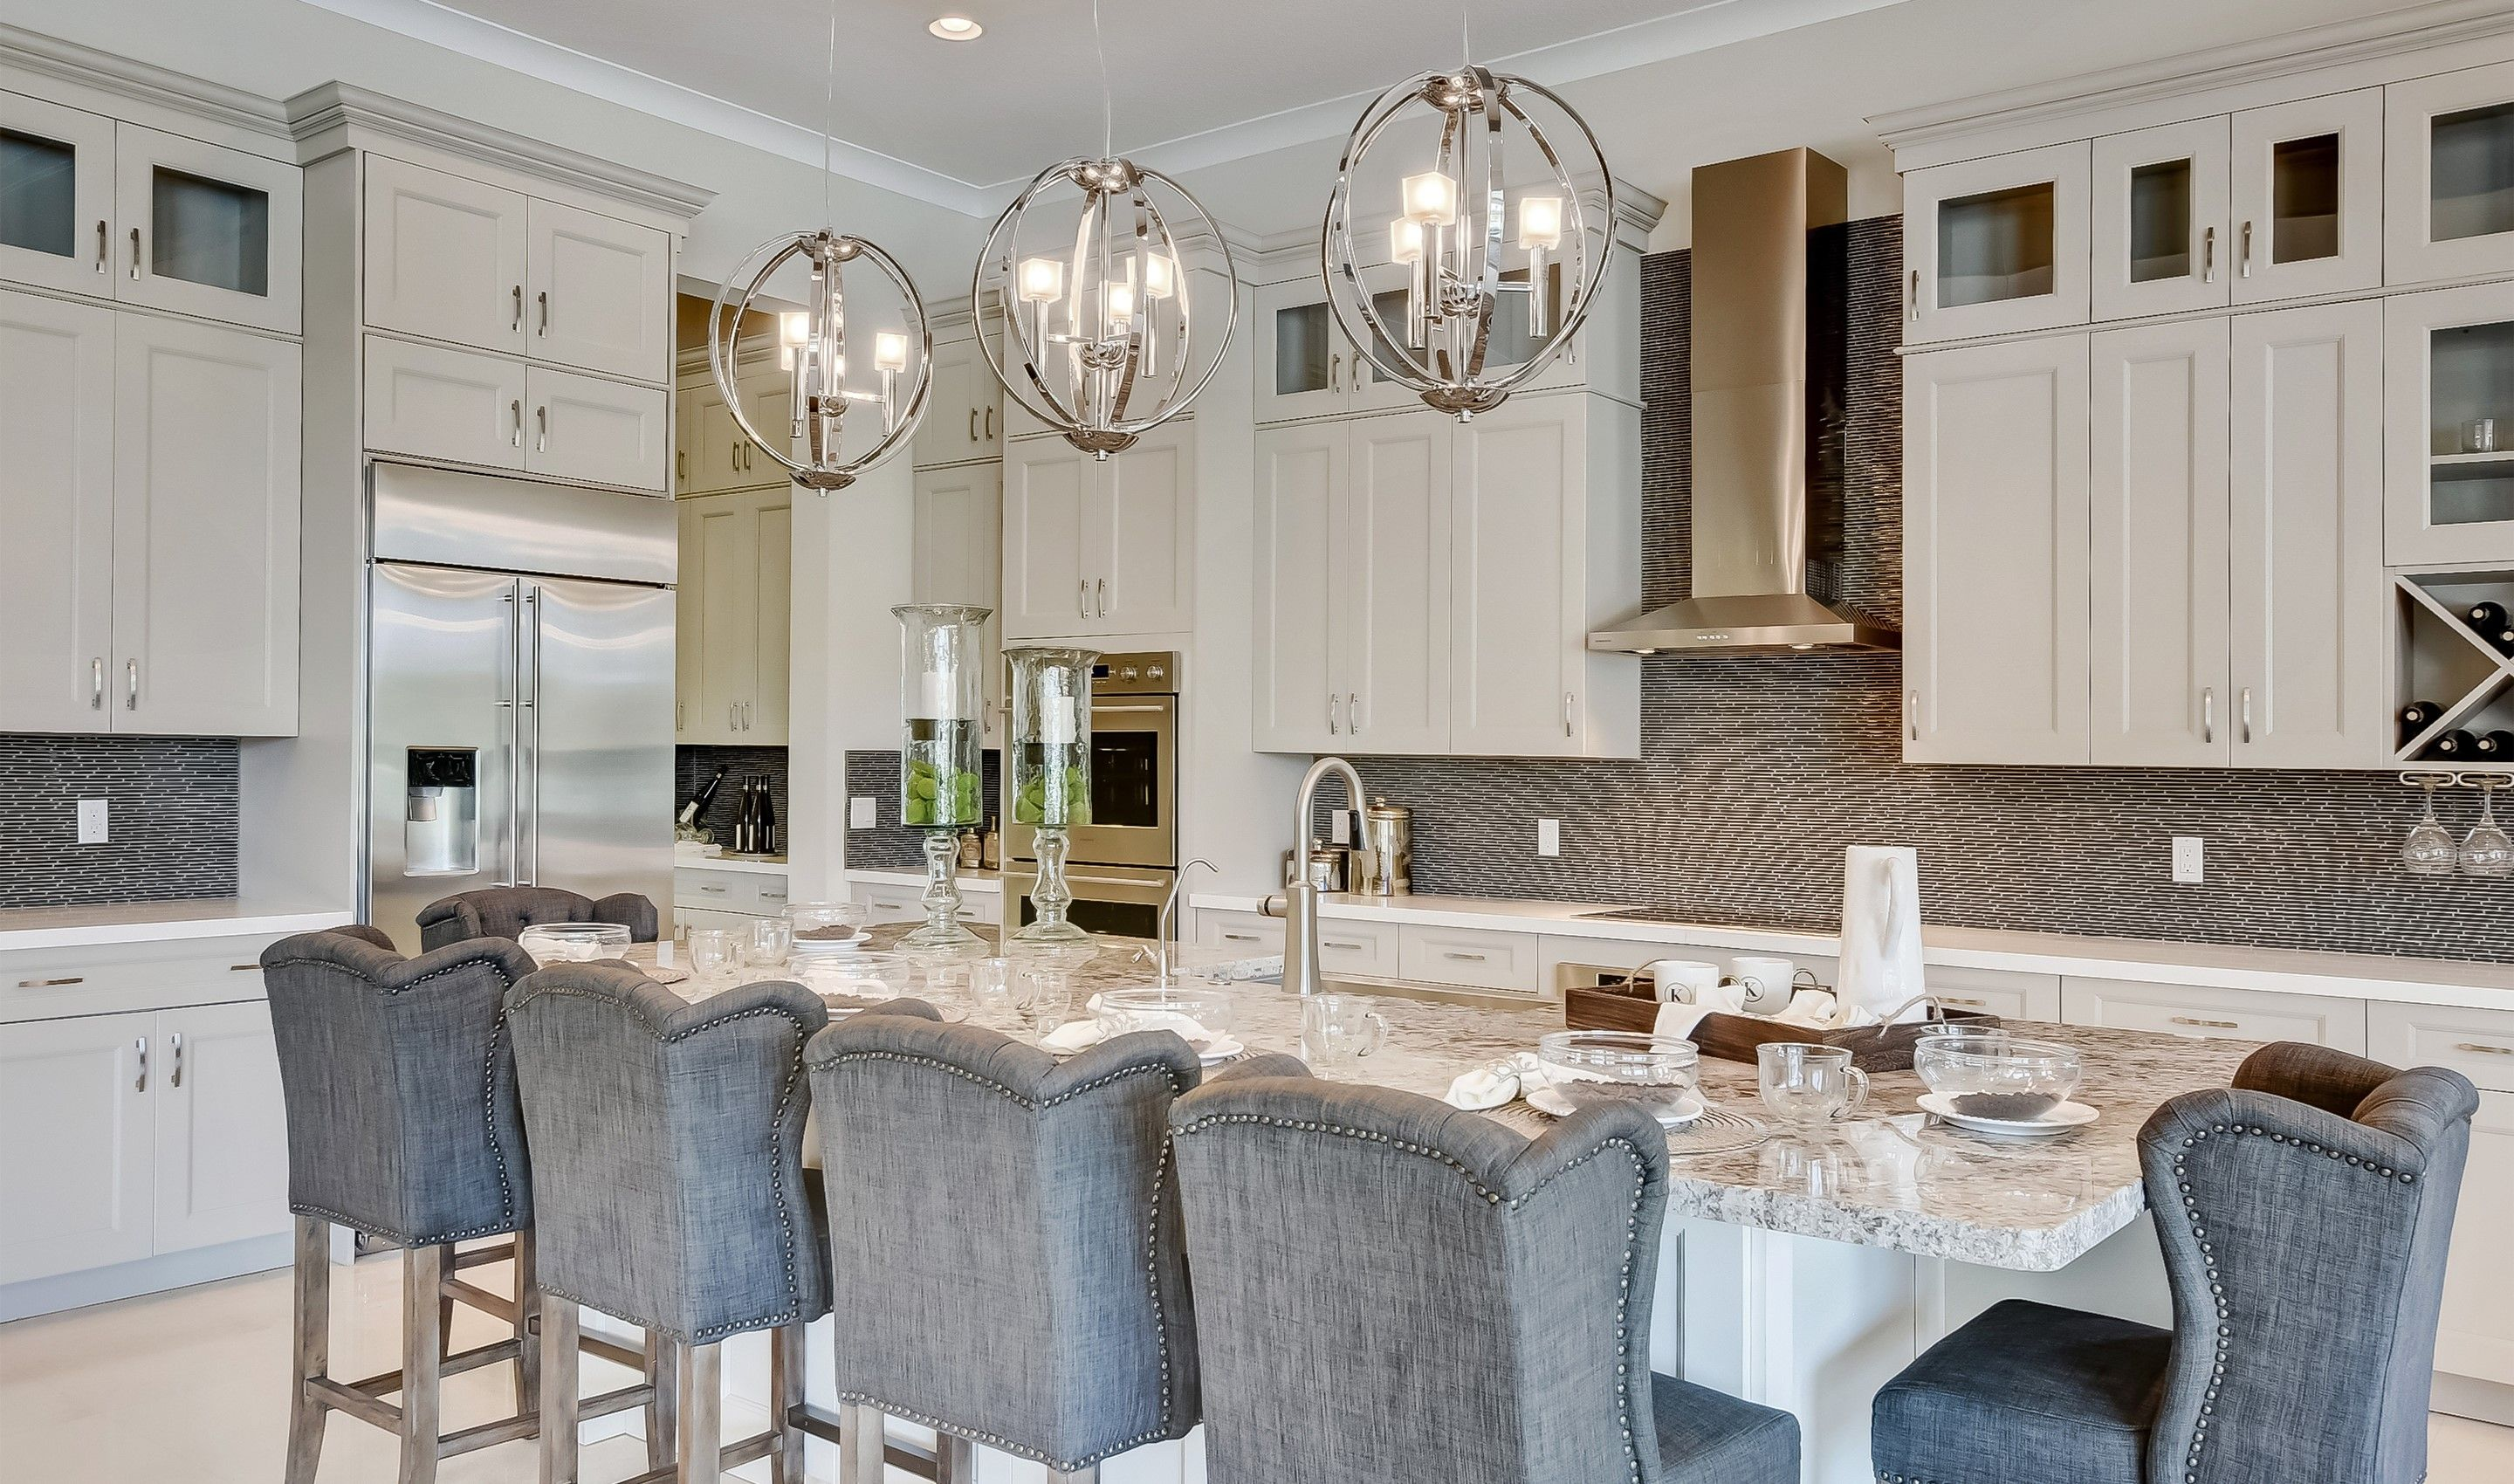 Kitchen featured in the Saffire By K. Hovnanian® Homes in Palm Beach County, FL